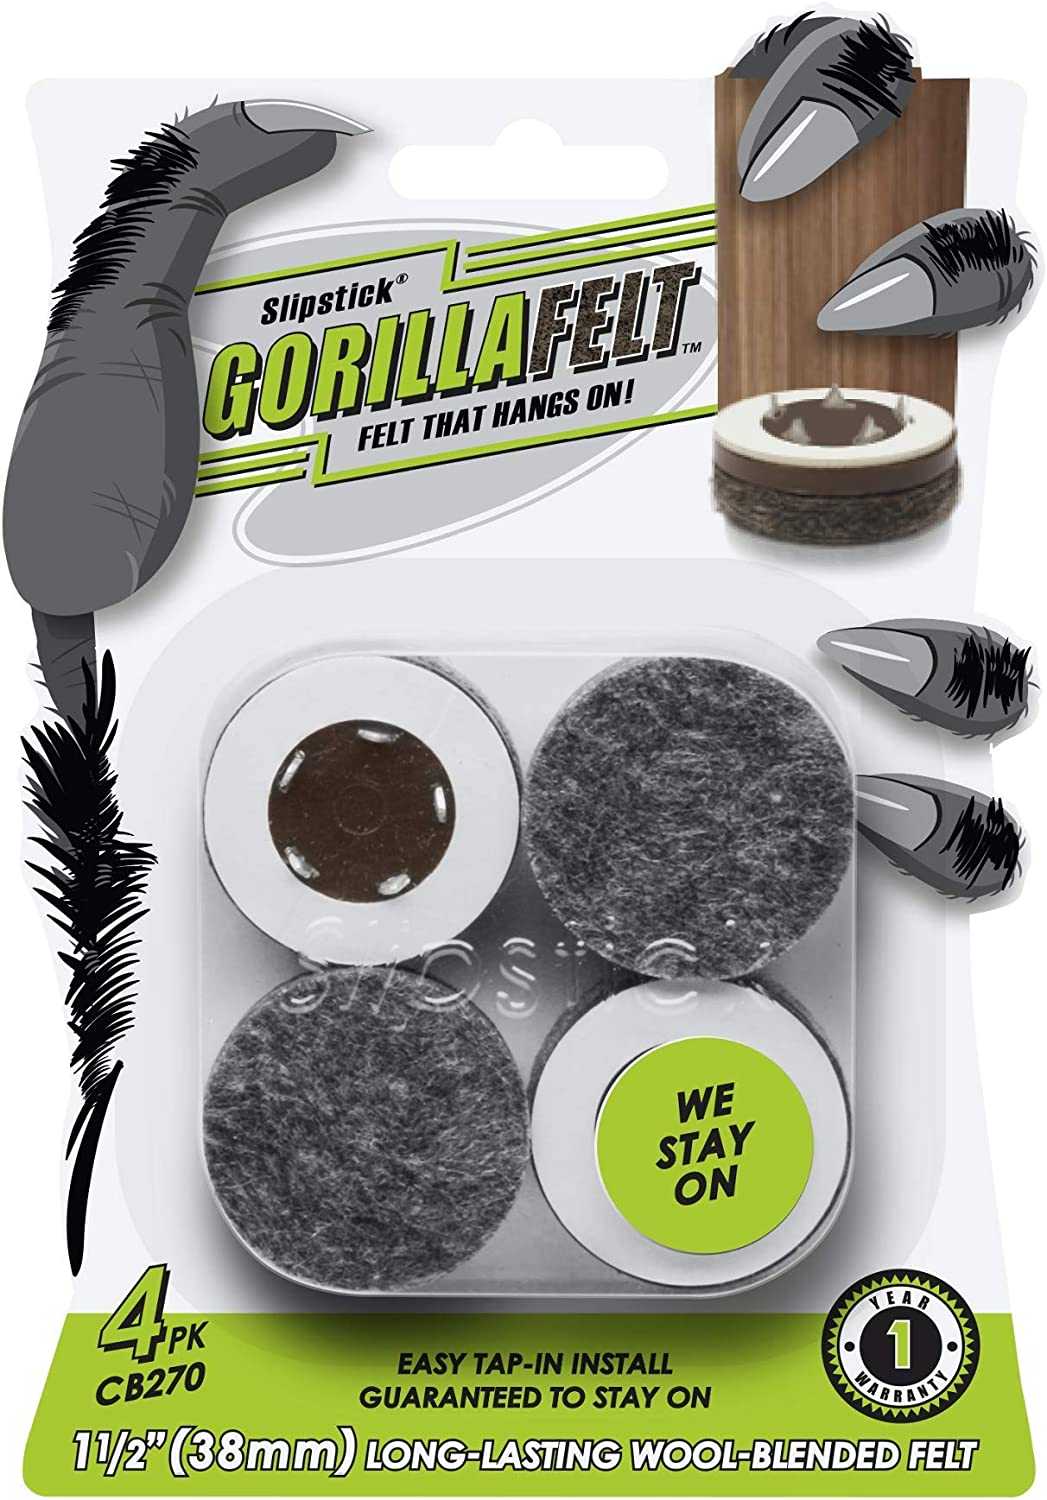 GorillaFelt CB270 Furniture Feet Floor Protectors/Felt Glides (Set of 4) Tap On Felt Furniture Pads Guaranteed to Stay On, 1-1/2 Inch Round Sliders